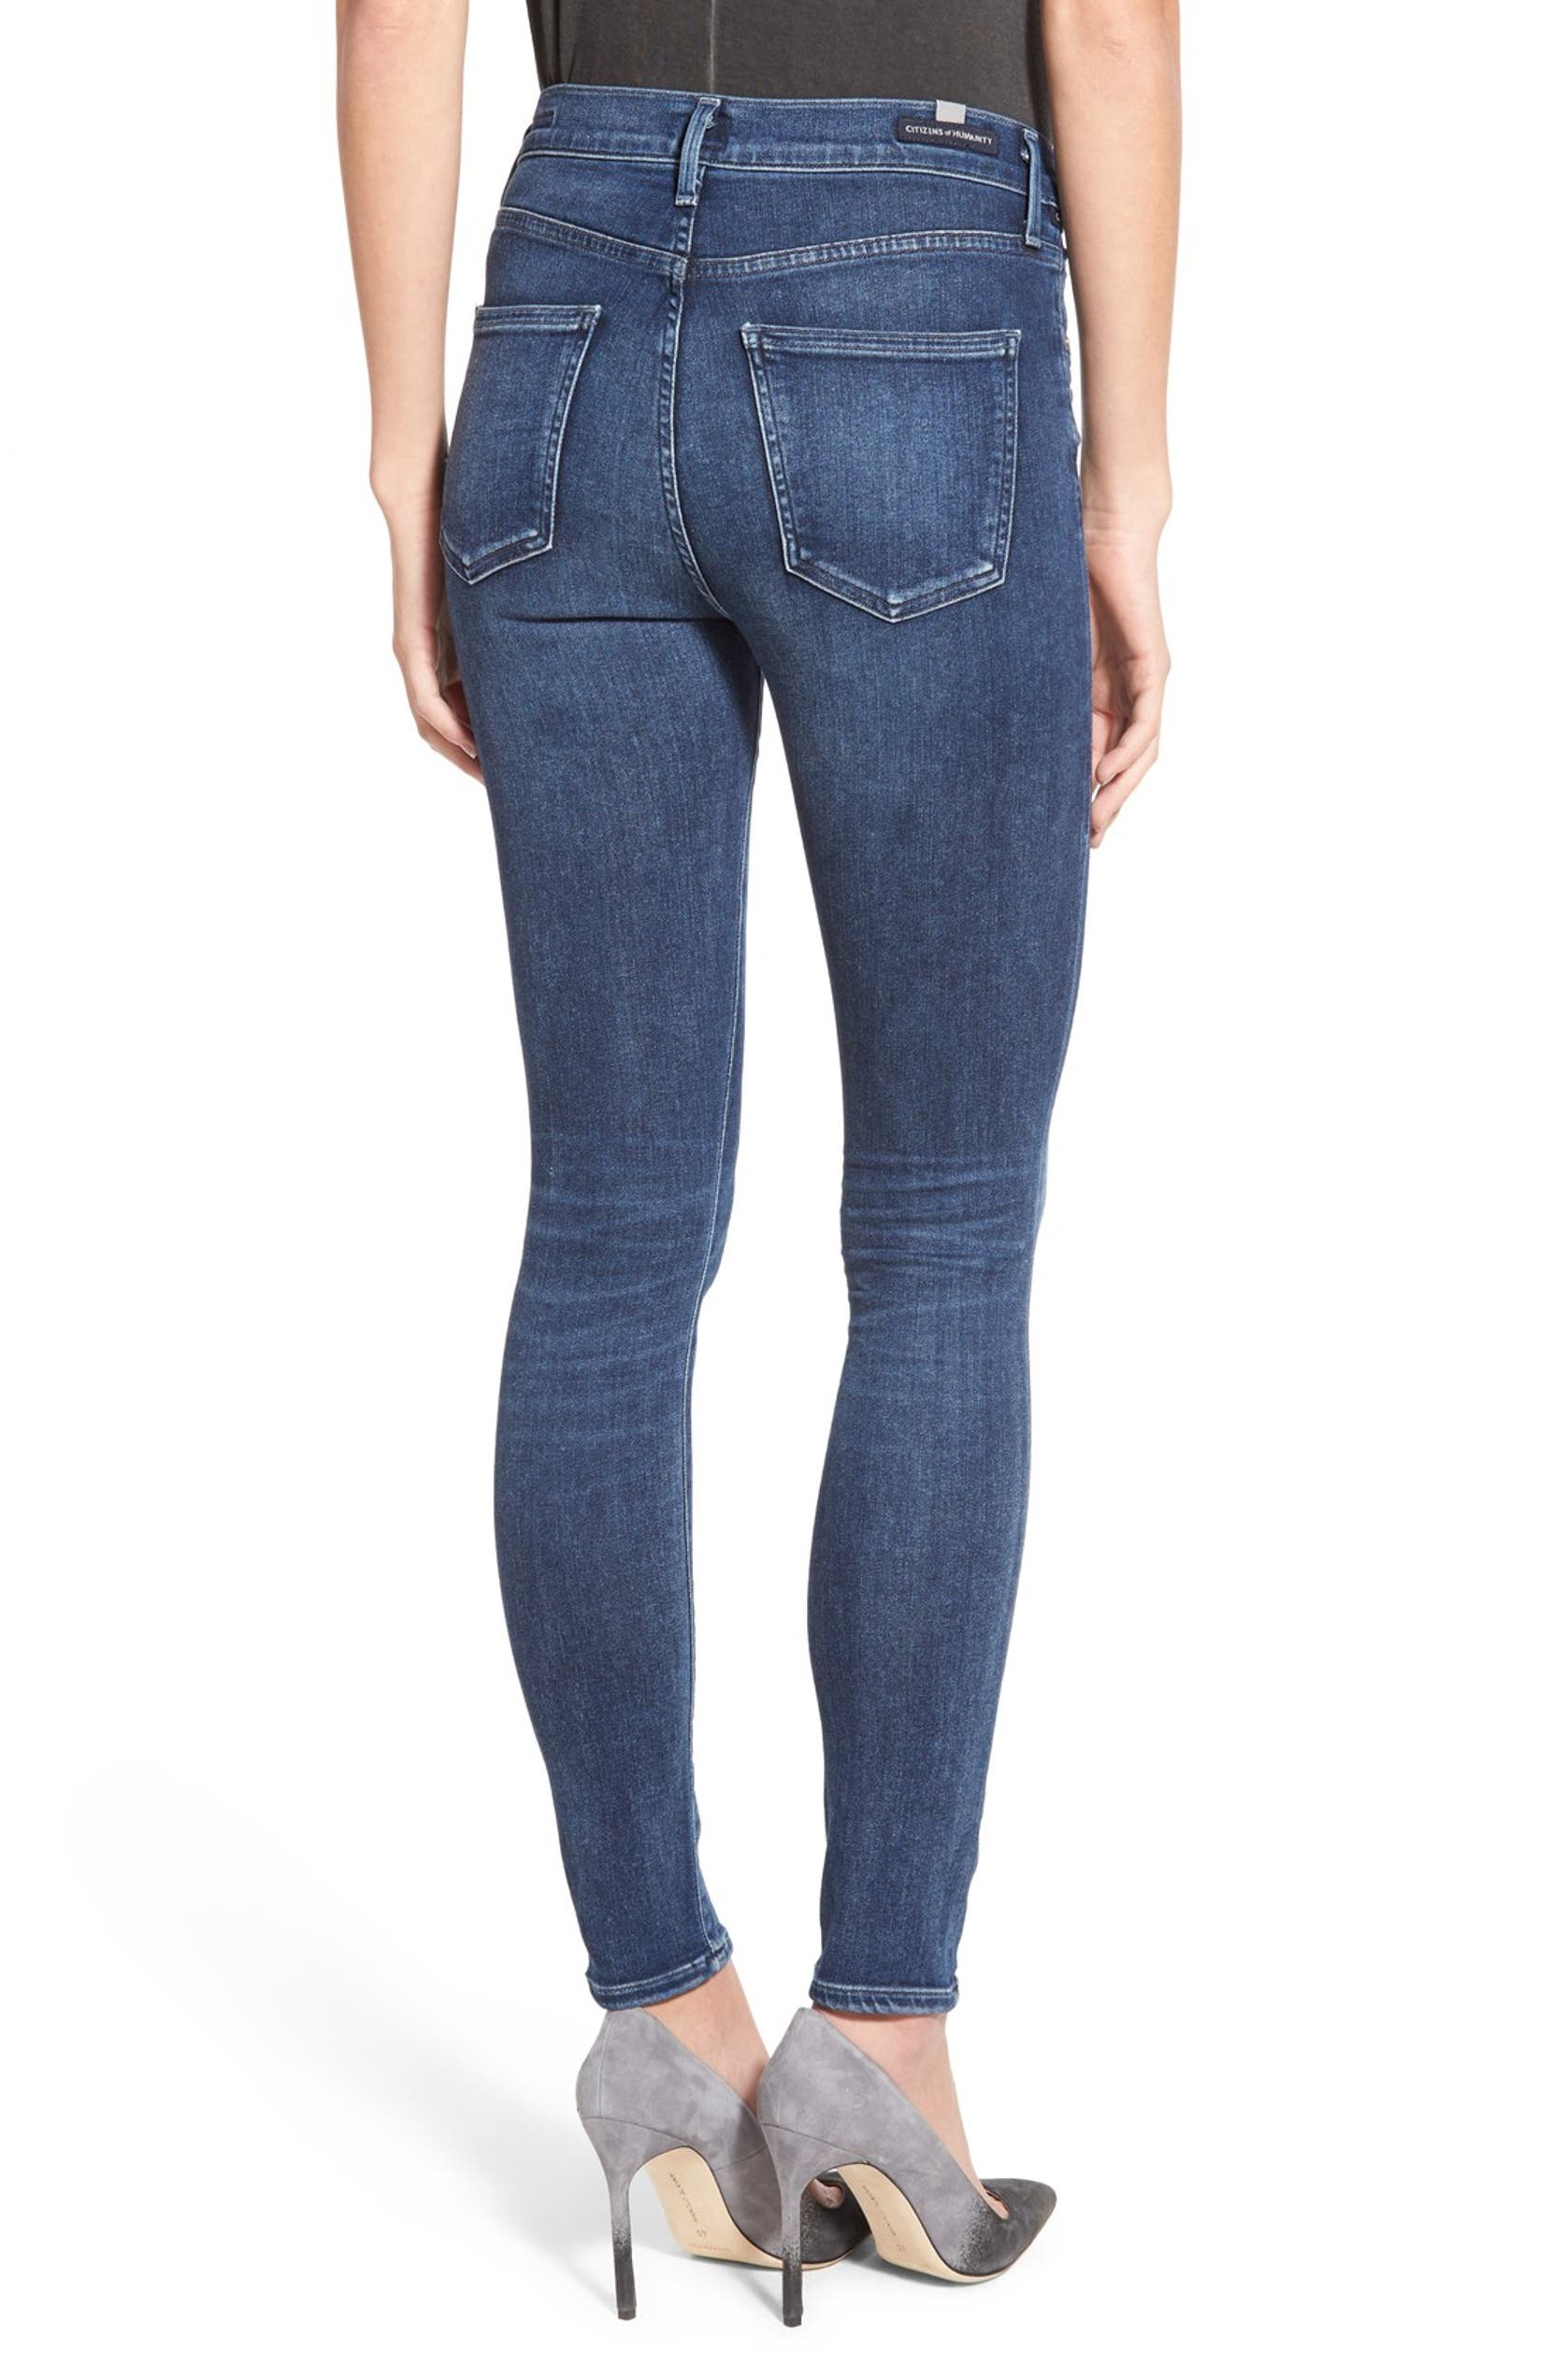 e109a0cbd9bd Citizens of Humanity Sculpt - Rocket High Waist Skinny Jeans (Waverly) |  Nordstrom